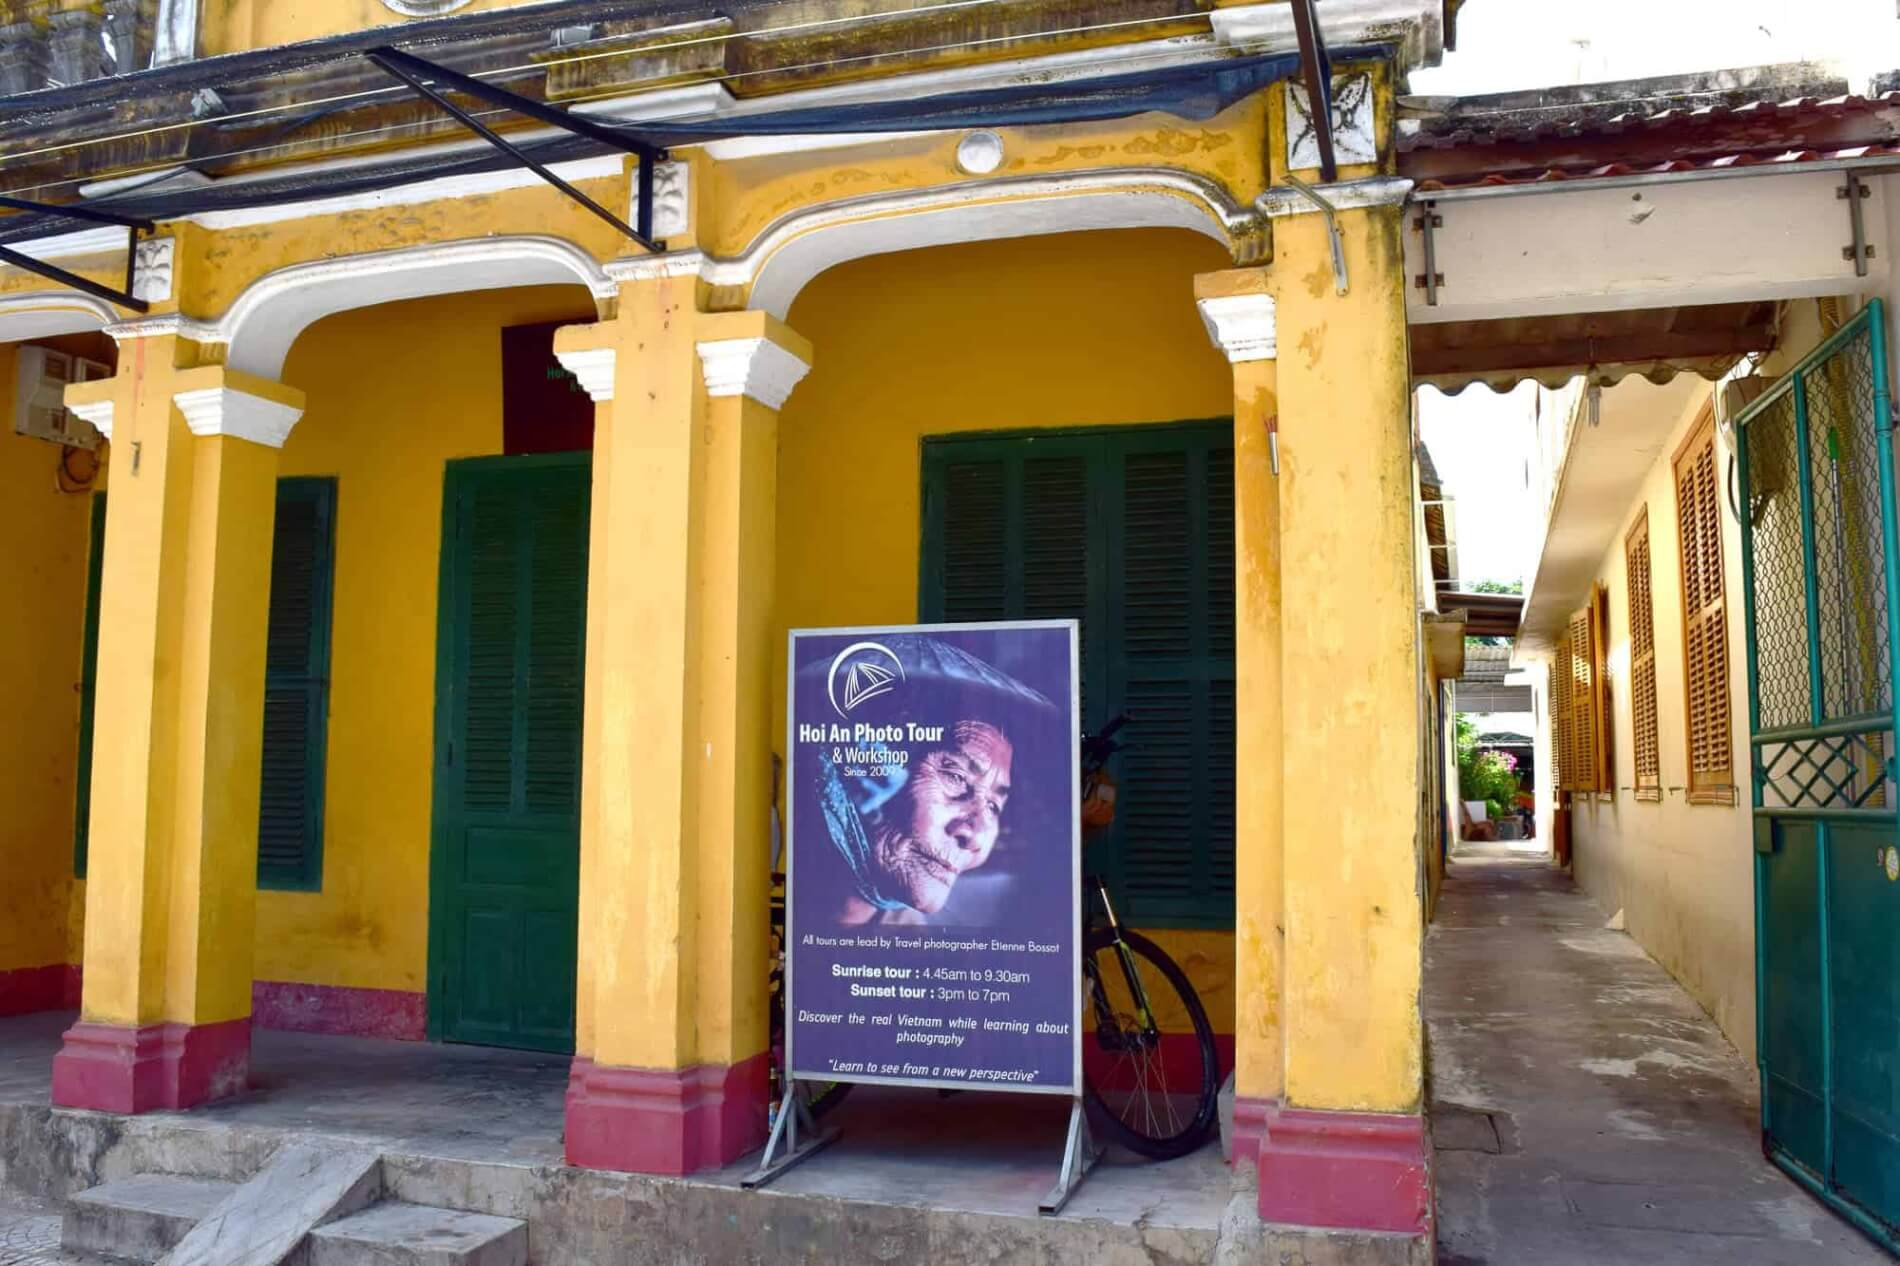 Hoi An Photography Tour - the shop